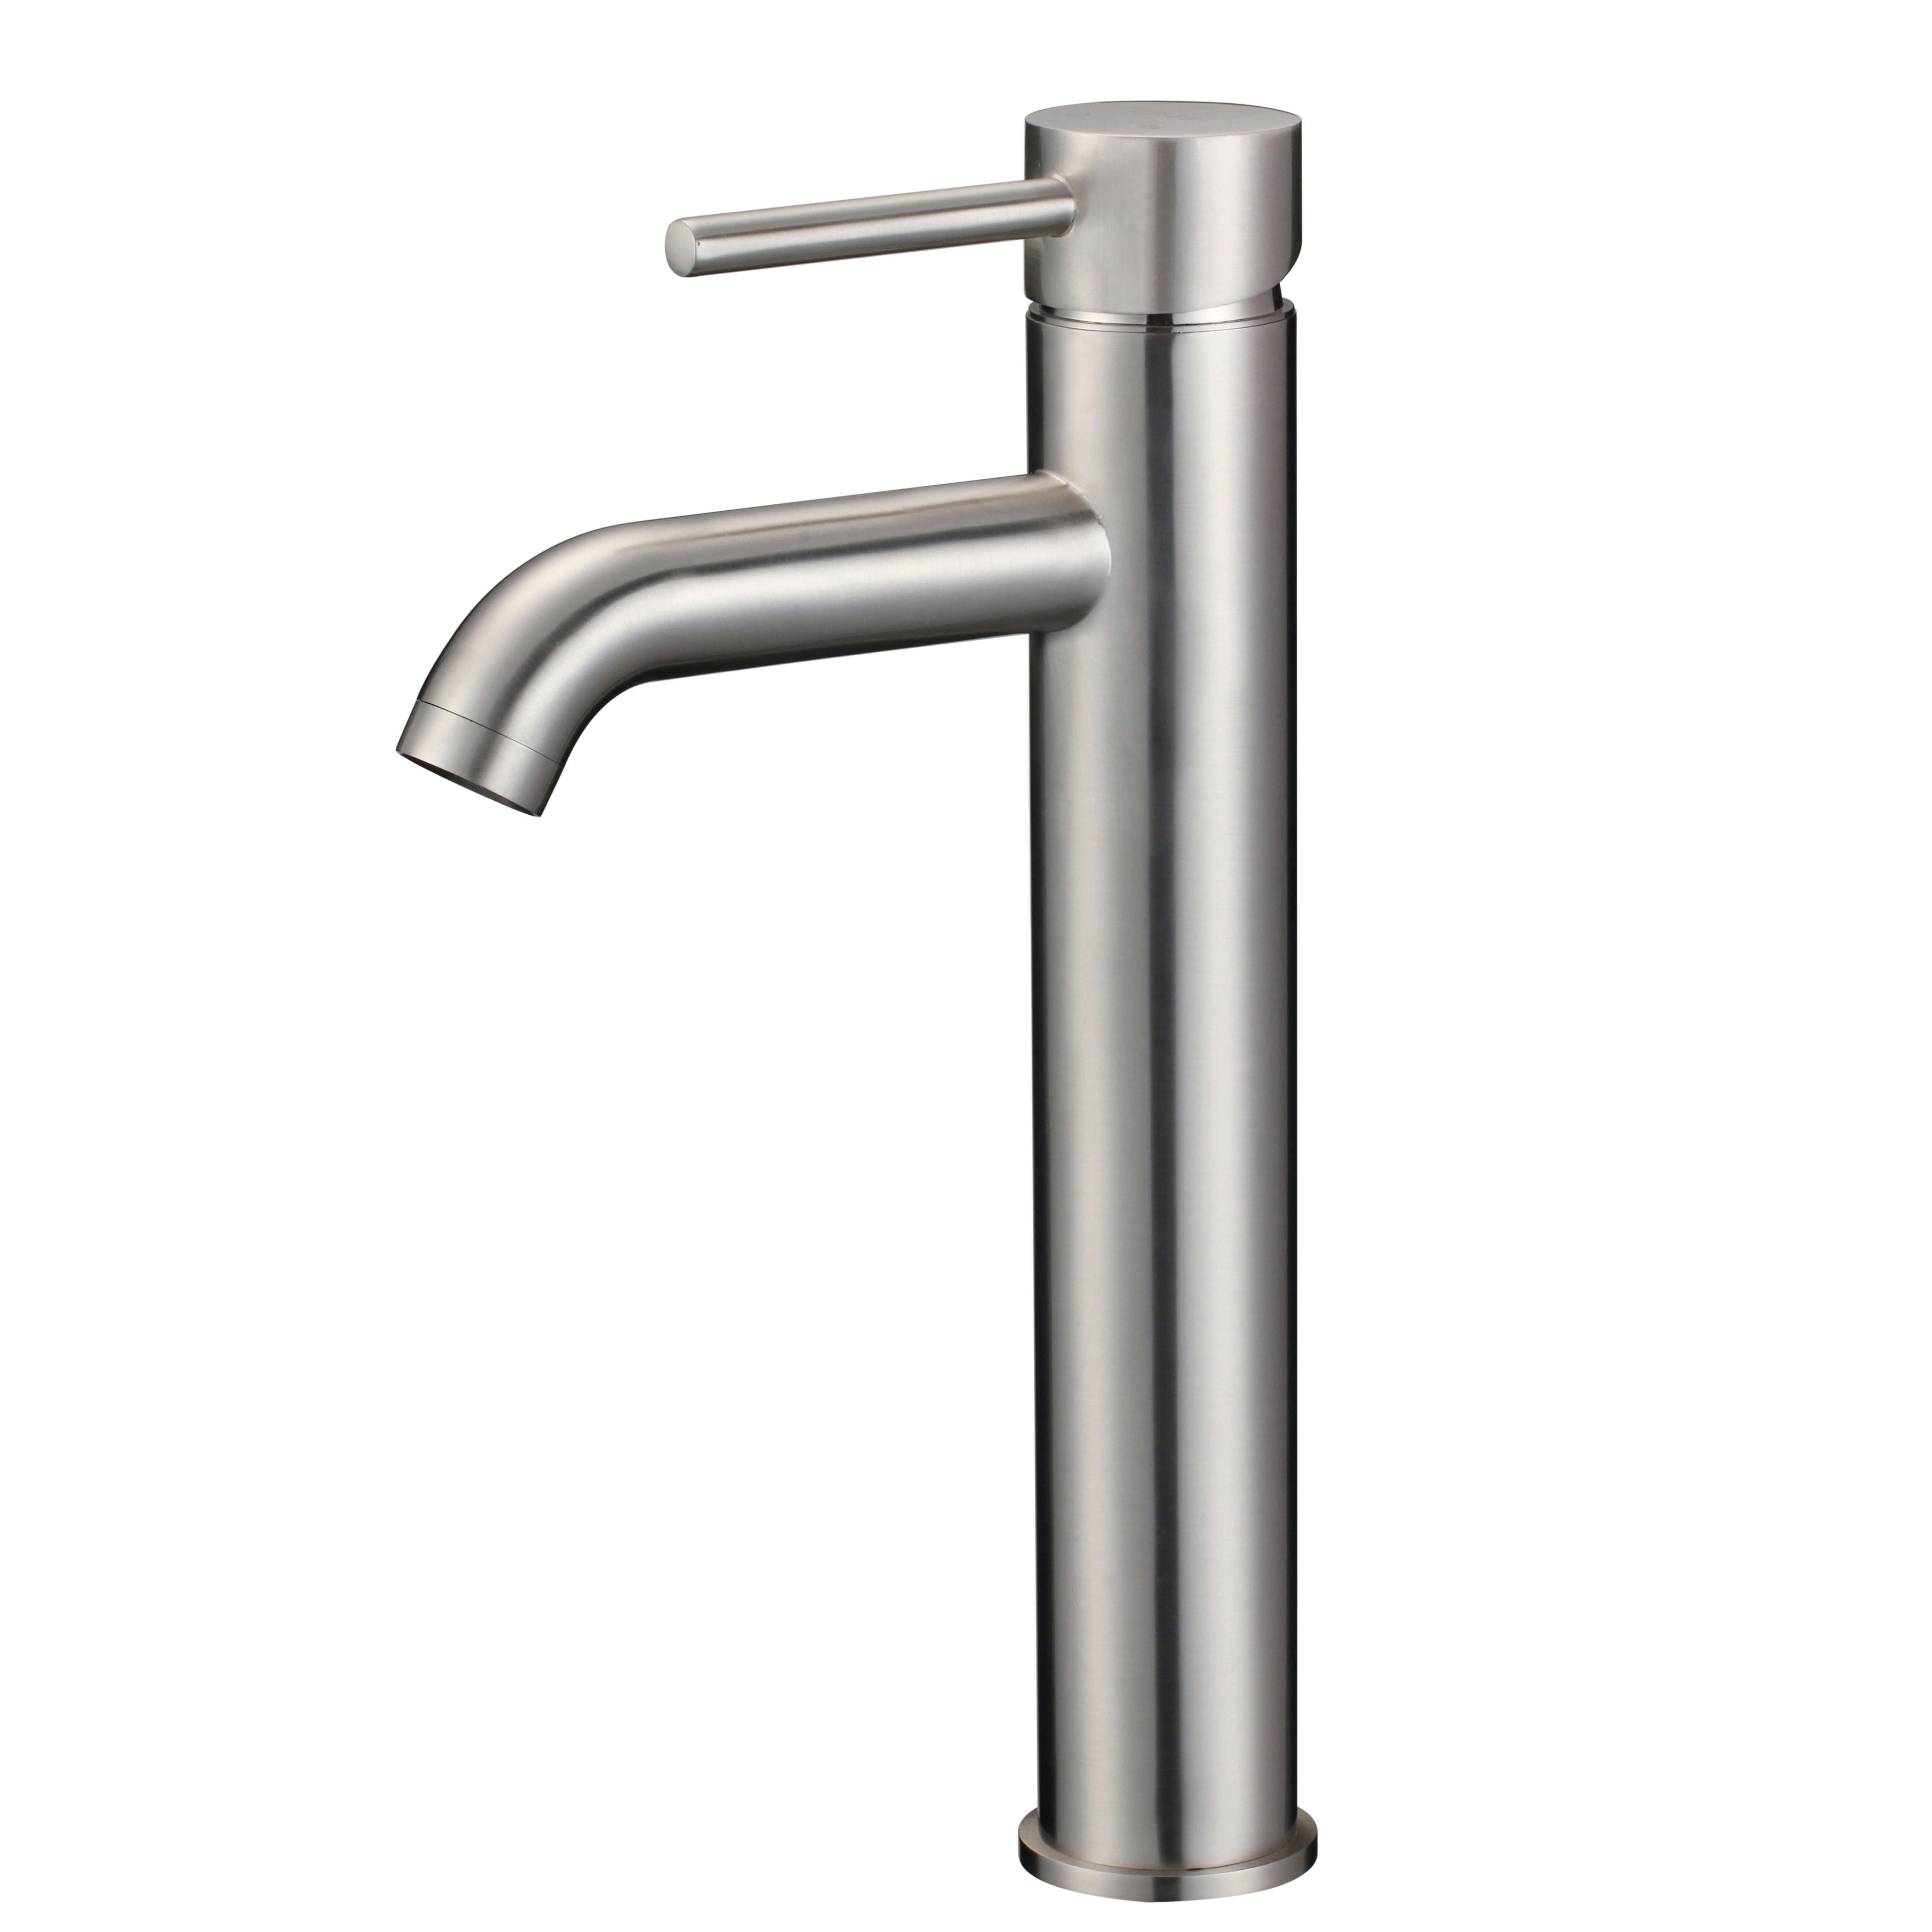 upscale designs by ema single handle bathroom sink faucet upscale brass ceramic mixed water valve pre rinse kitchen